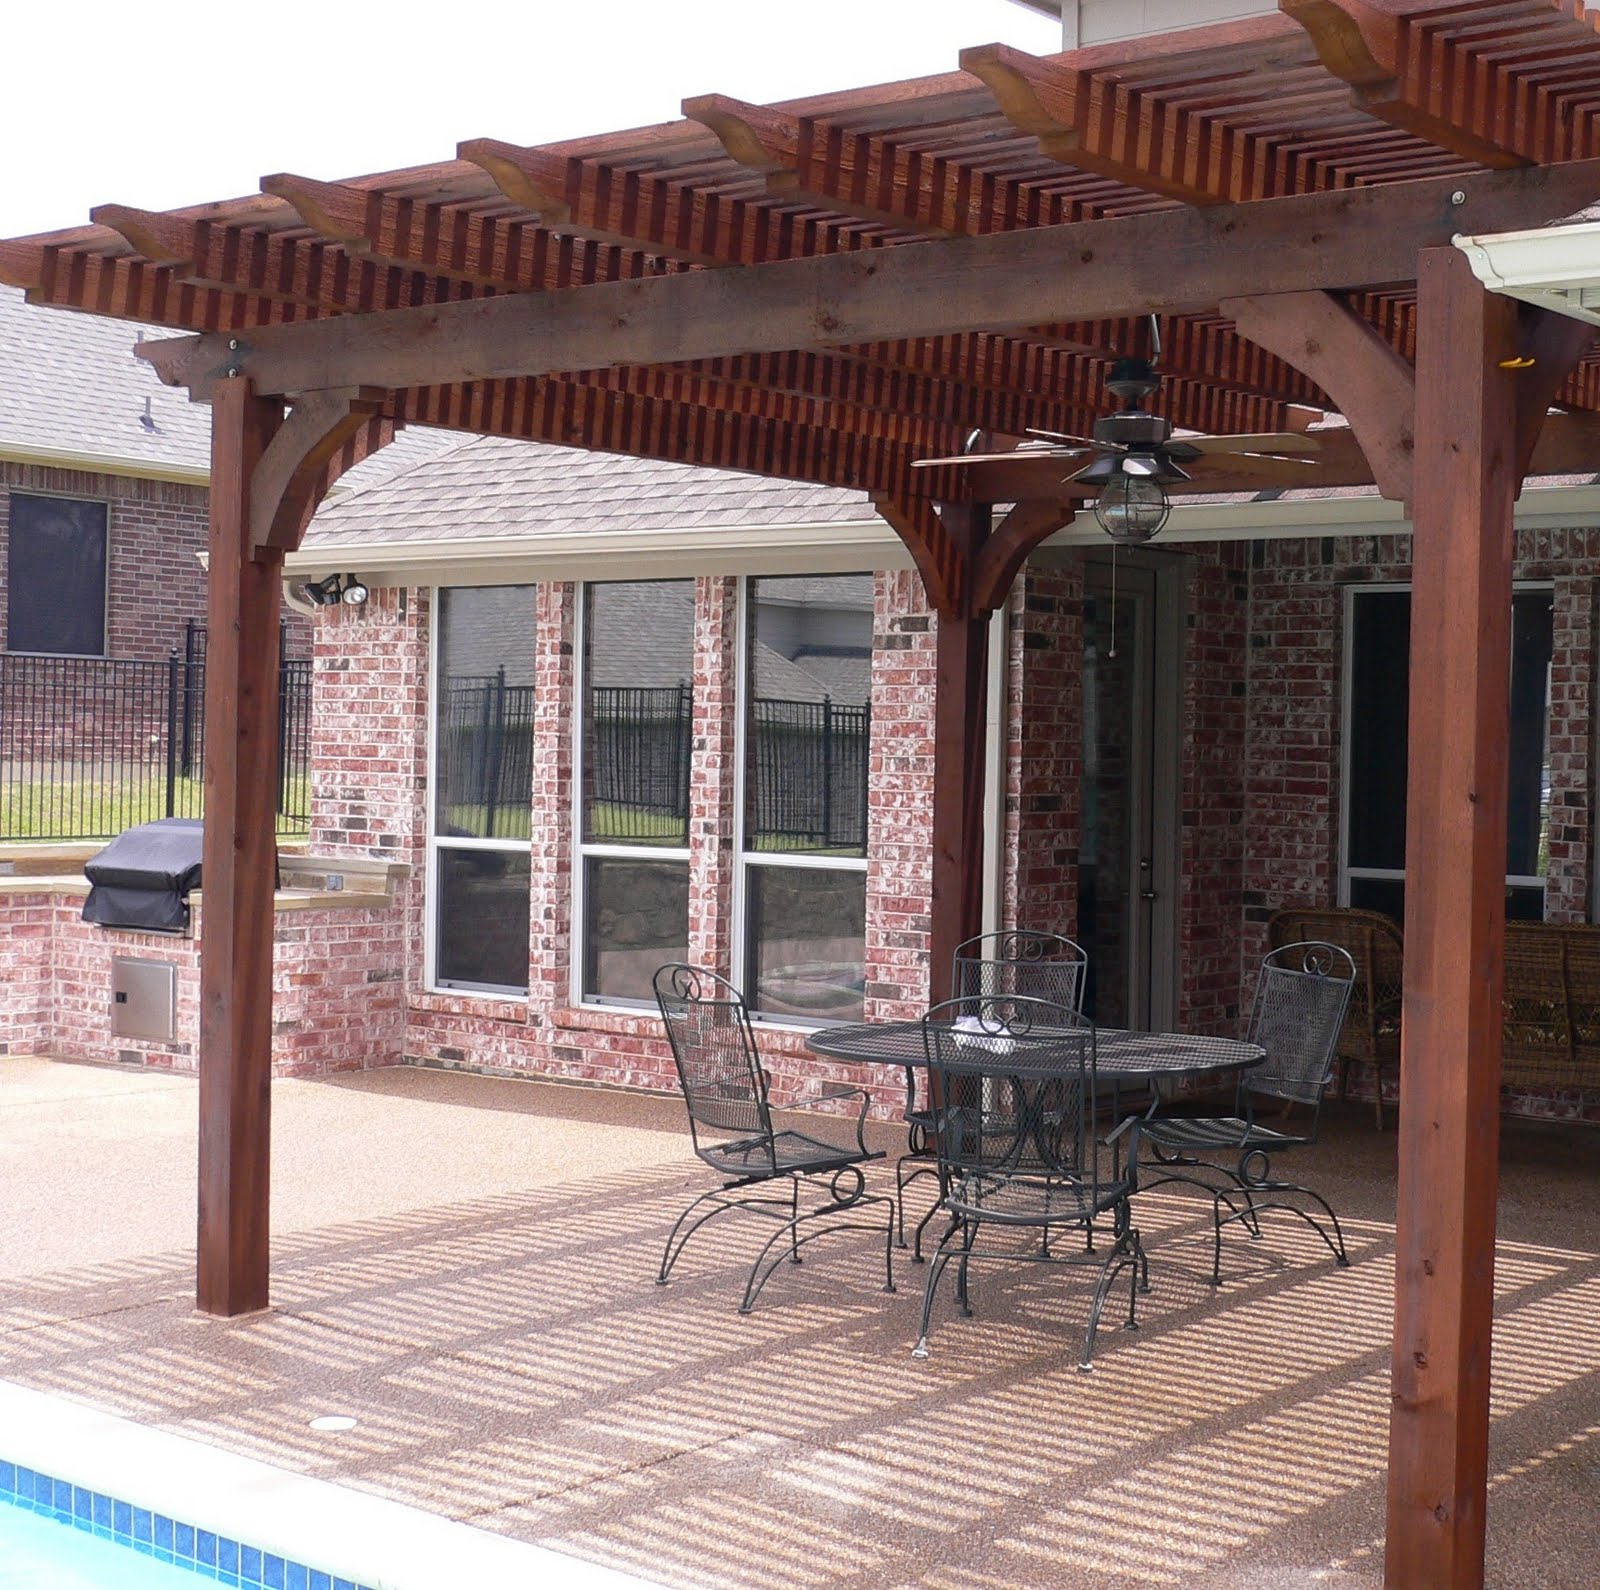 Wooden Patio Covers: Give High Aesthetic Value and Best ... on Backyard Patio Cover  id=81708